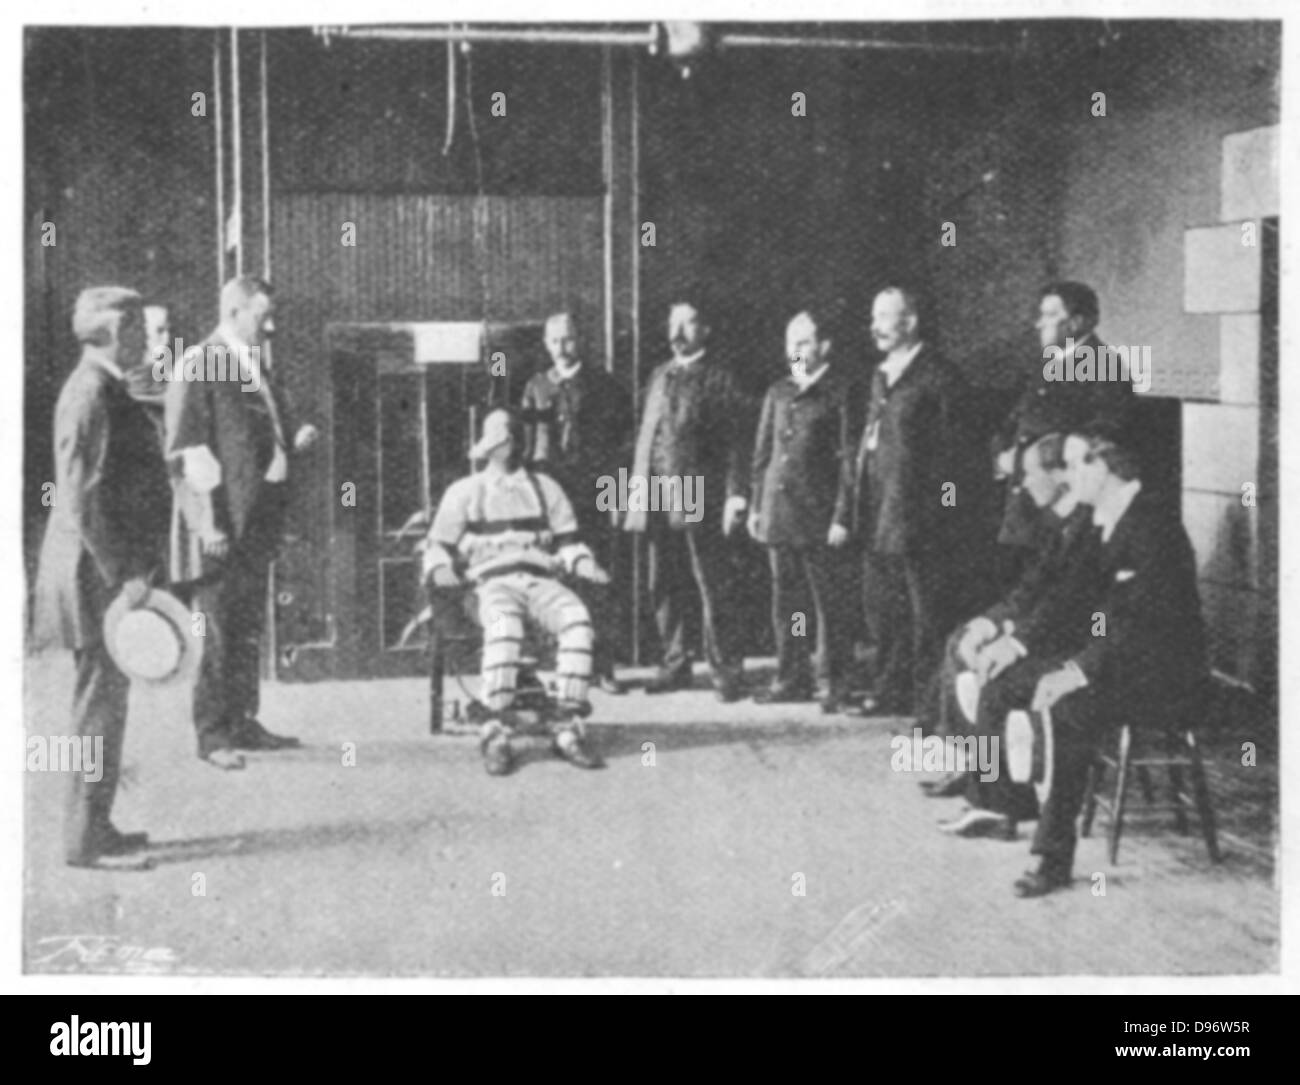 First electric chair victim - Execution By Electric Chair Sing Sing Prison New York Usa The Execution